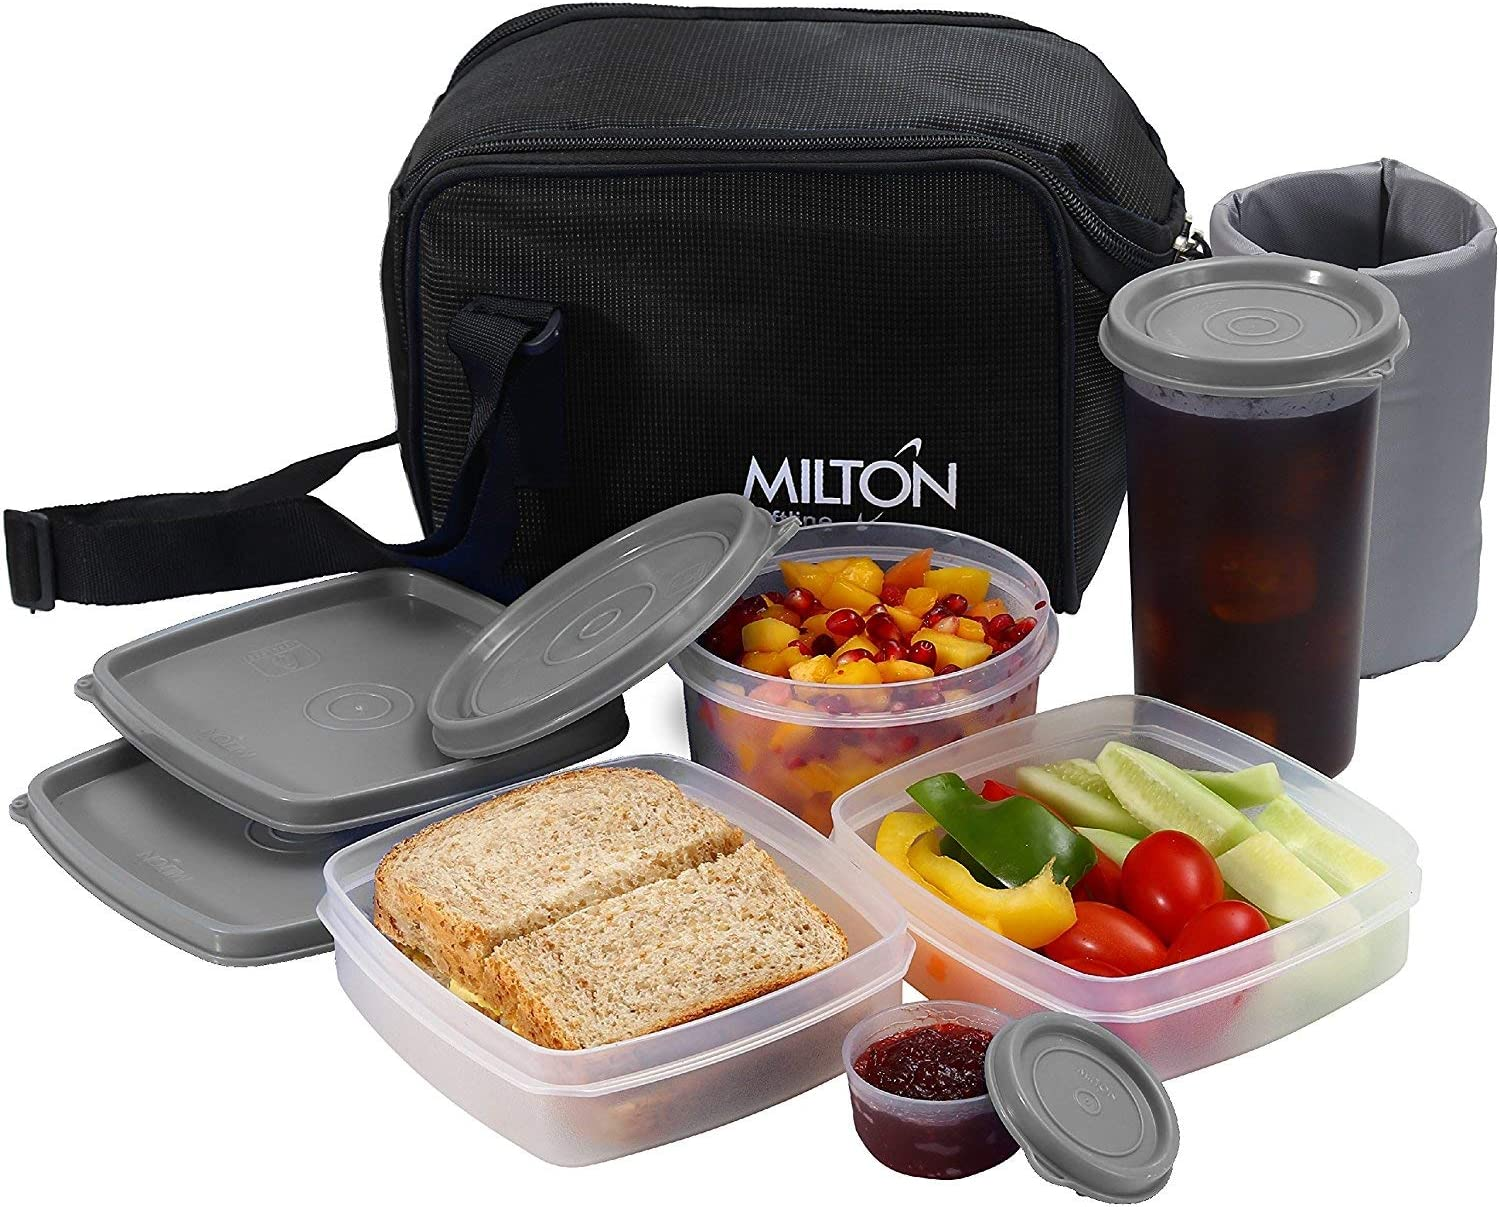 Insulated Lunch Bag Box Kit, Milton 5 Pc Set, Adults Men Women, Leakproof Airtight Containers Cooler Tote with Adjustable Shoulder Strap for Work and Travel - Black